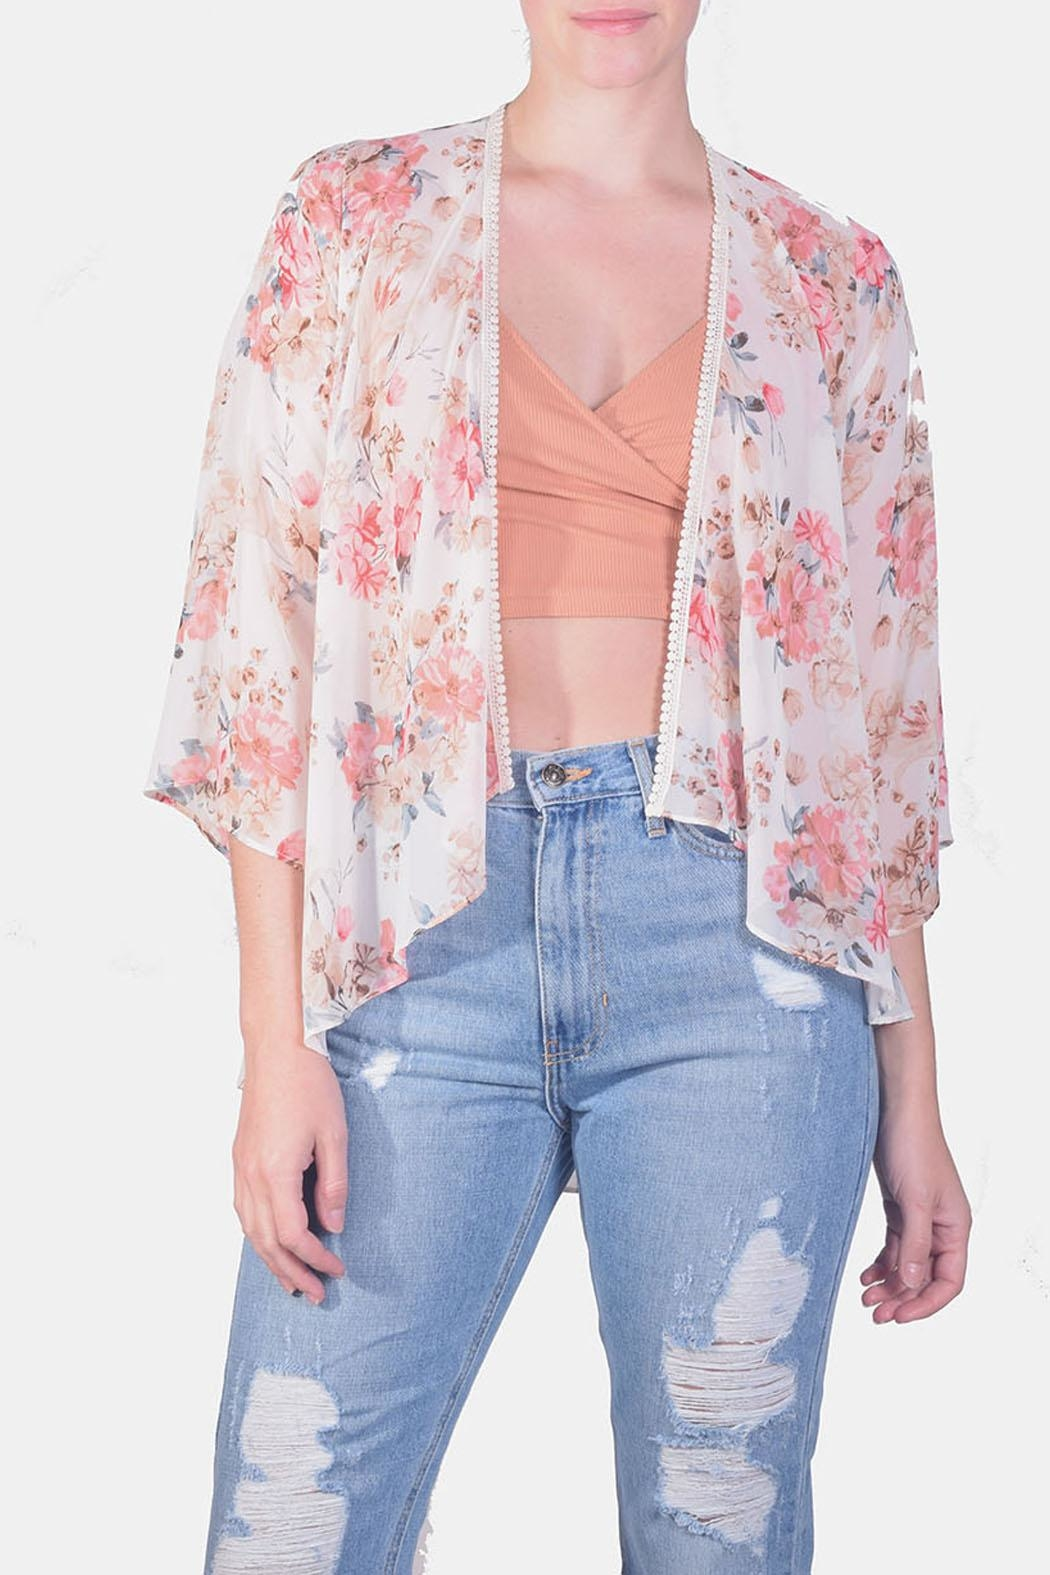 Miss Love Free-Spirit Embroidered Kimono - Main Image